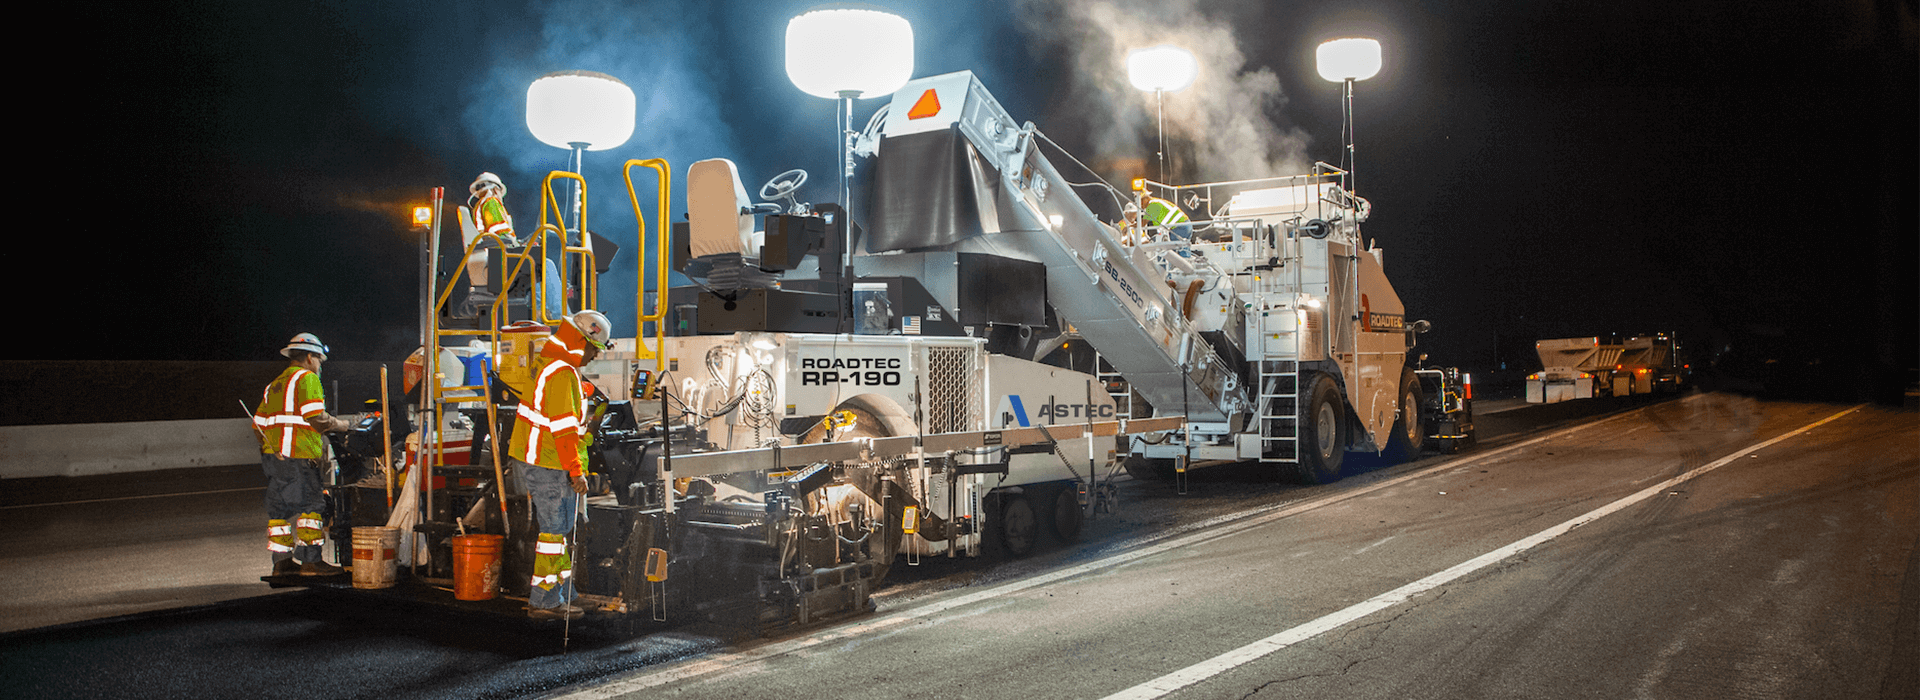 Roadtec RP-190 highway class asphalt paver paving at night with a Roadtec Shuttle Buggy Material Transfer Vehicle